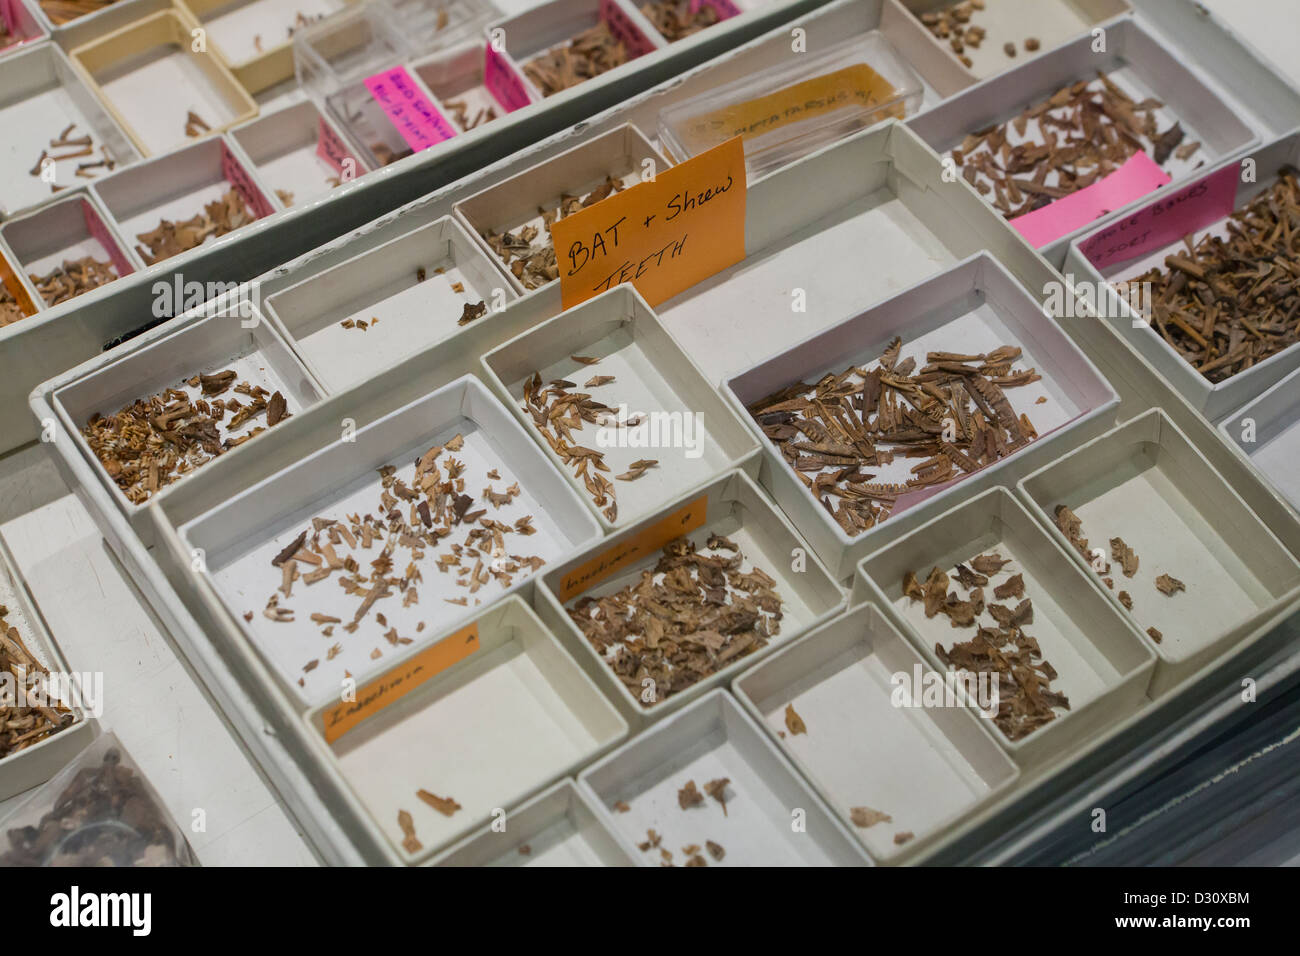 Sorted small fossil bones - Stock Image